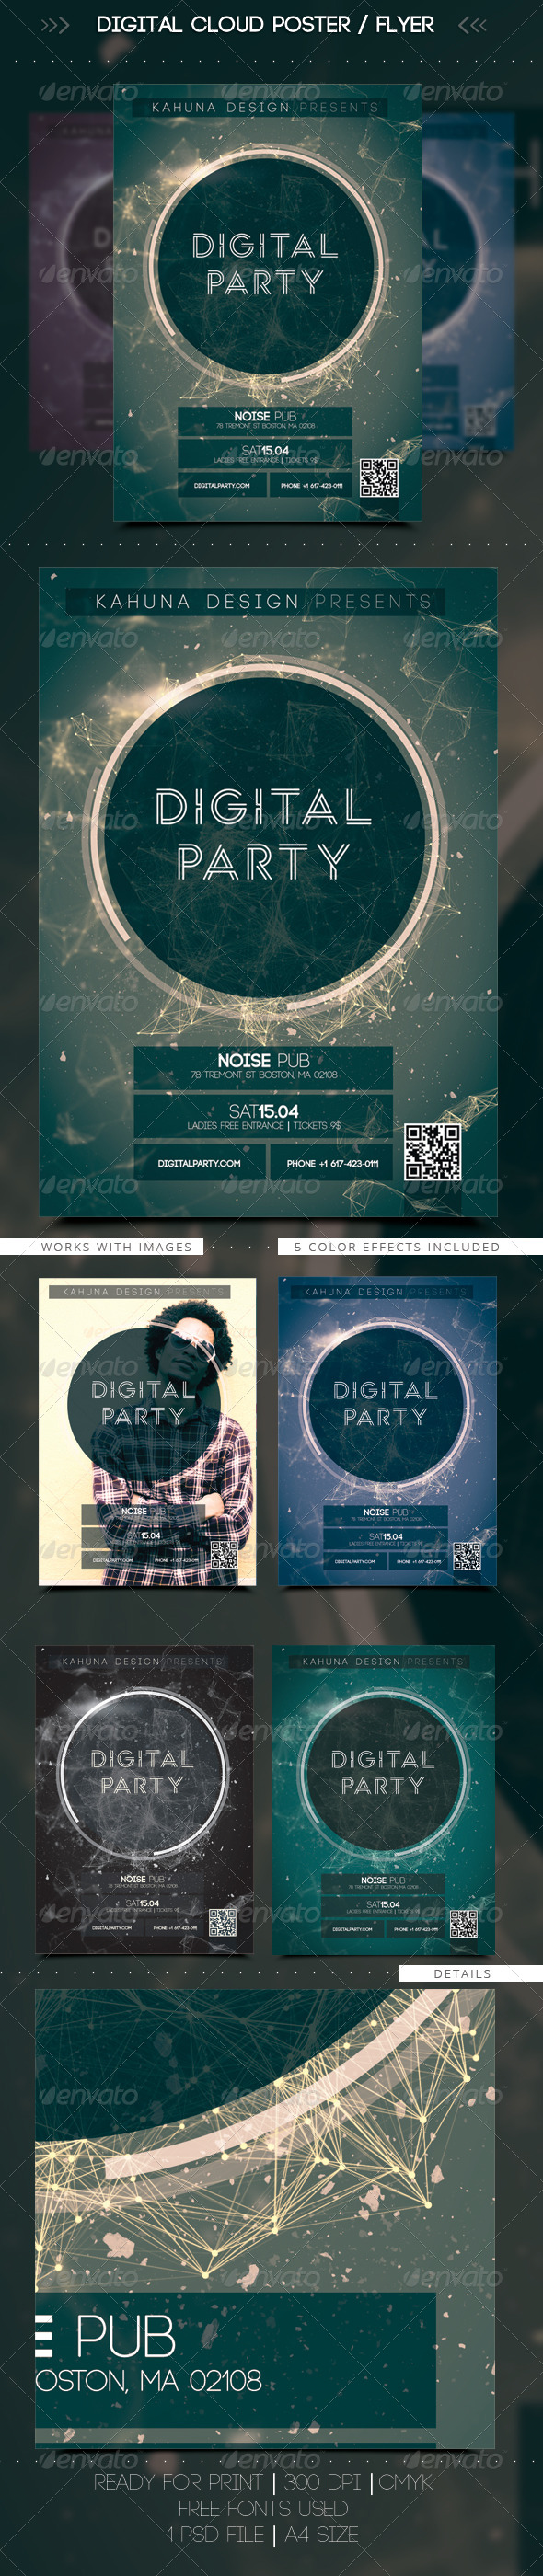 Digital Cloud Poster / Flyer - Clubs & Parties Events